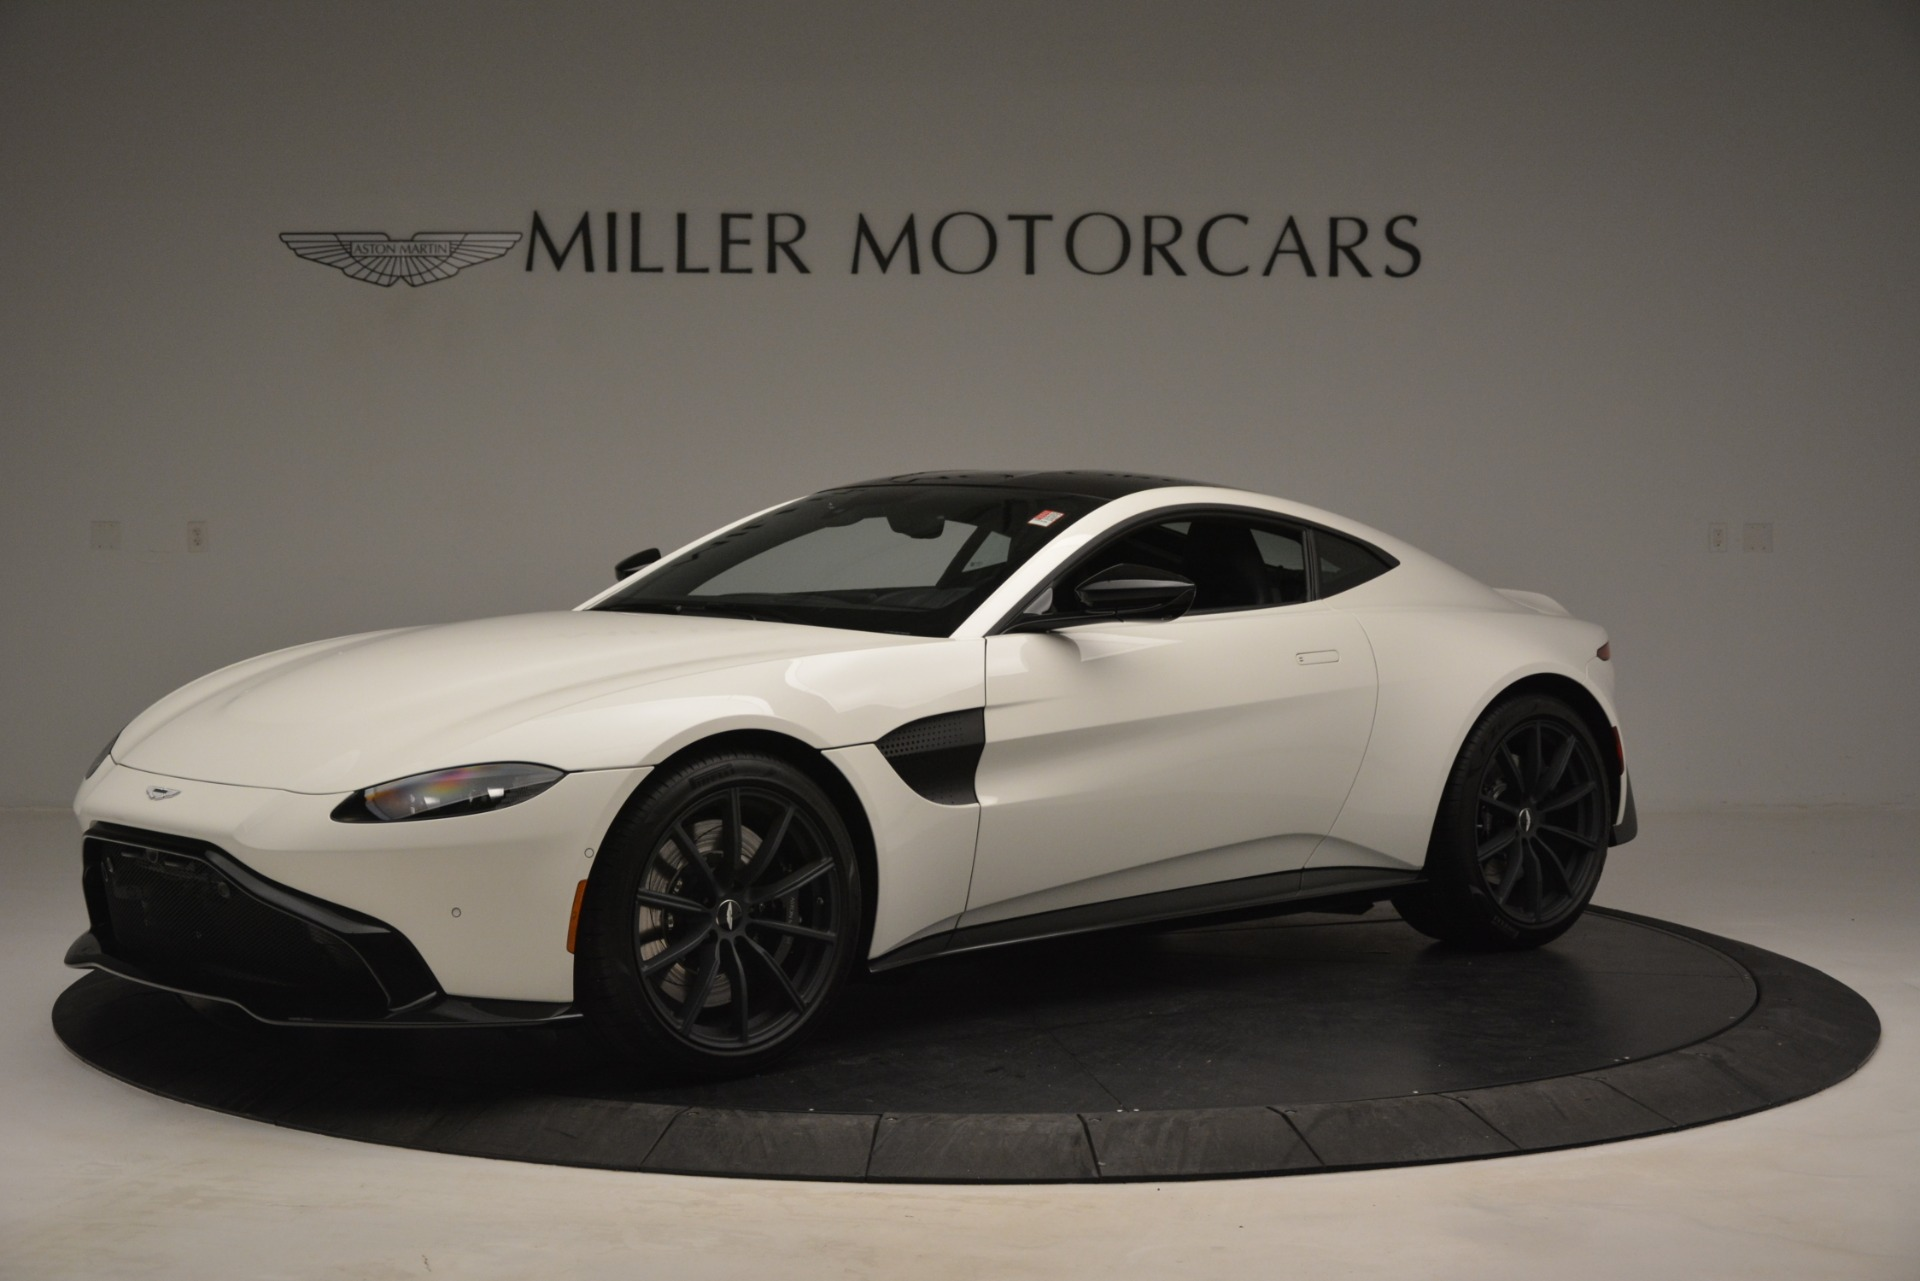 New 2019 Aston Martin Vantage V8 for sale Sold at Aston Martin of Greenwich in Greenwich CT 06830 1